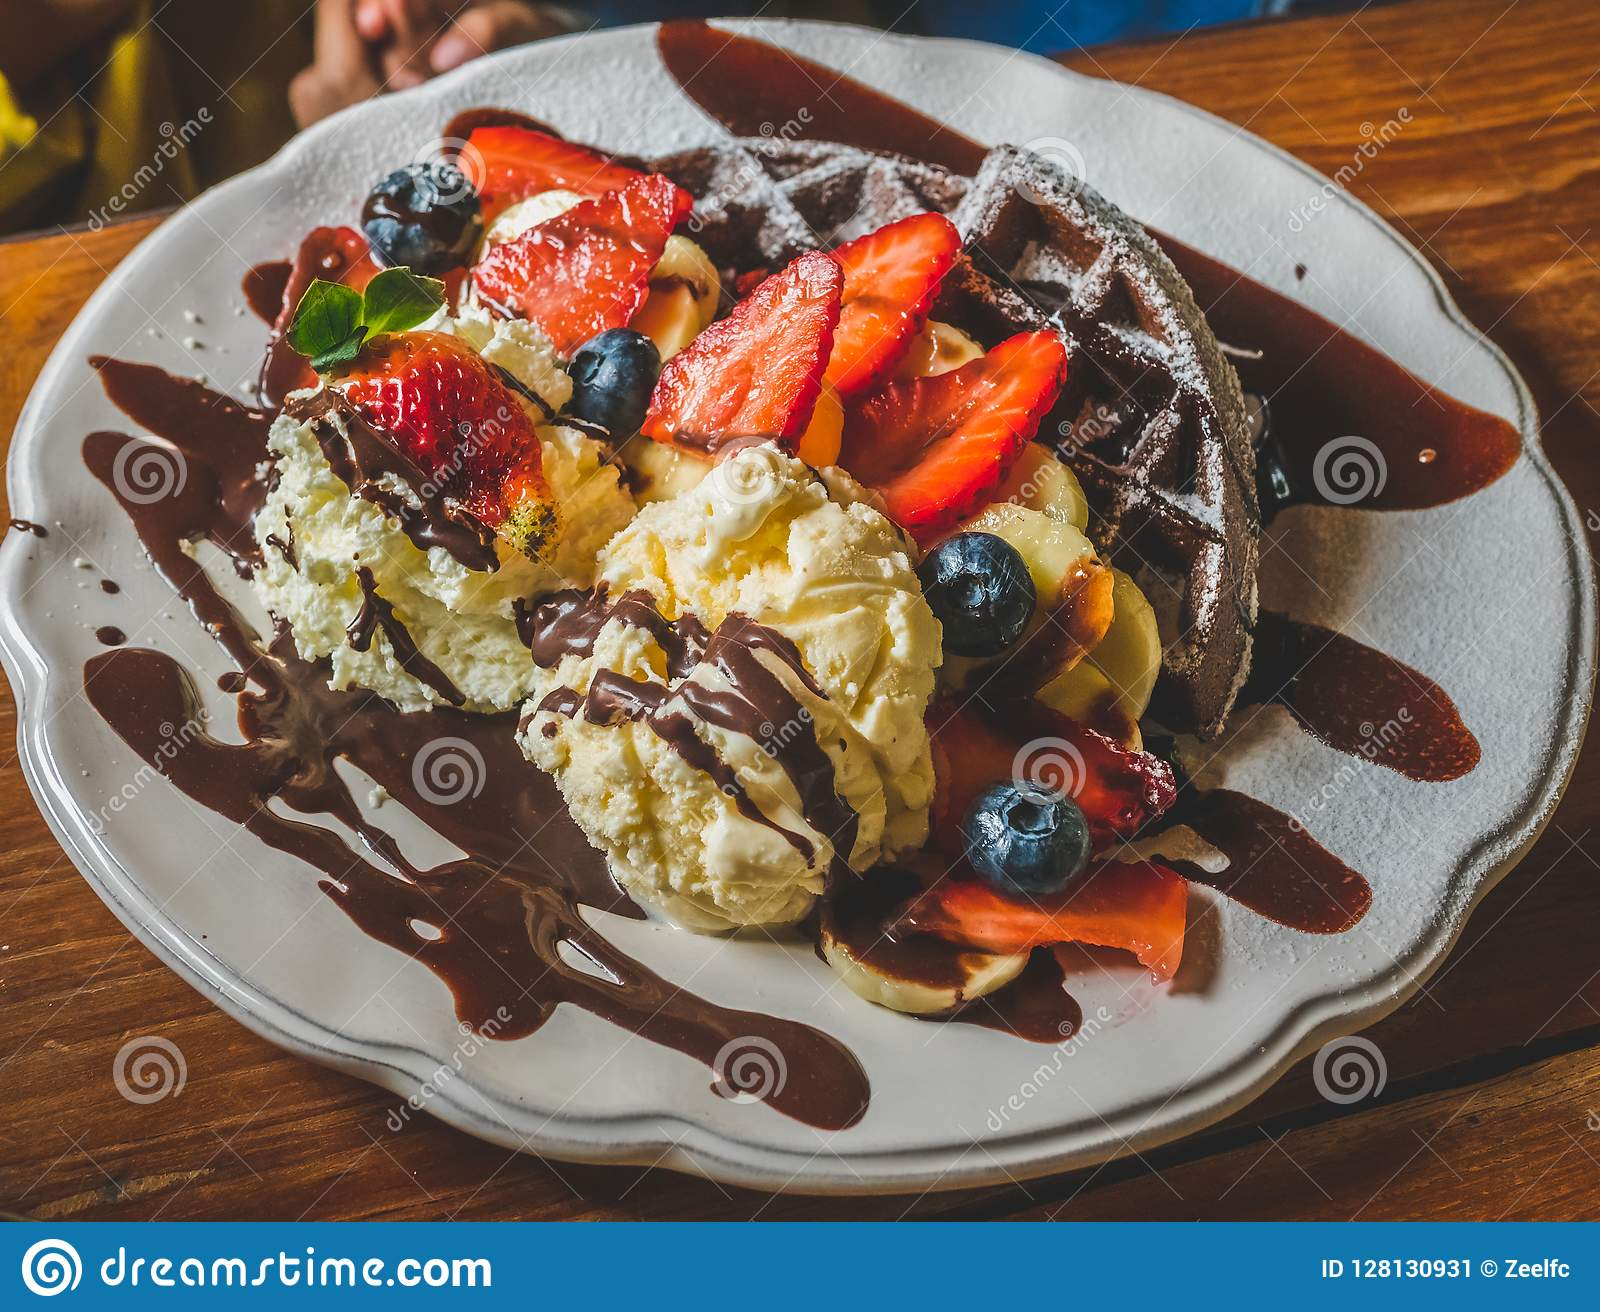 Chocolate Pancakes With Banana Strawberry Blueberry Whipping Cream And Vanilla Ice Cream Icing Sugar Brownies And Chocolate S Stock Image Image Of Lunch Crepes 128130931